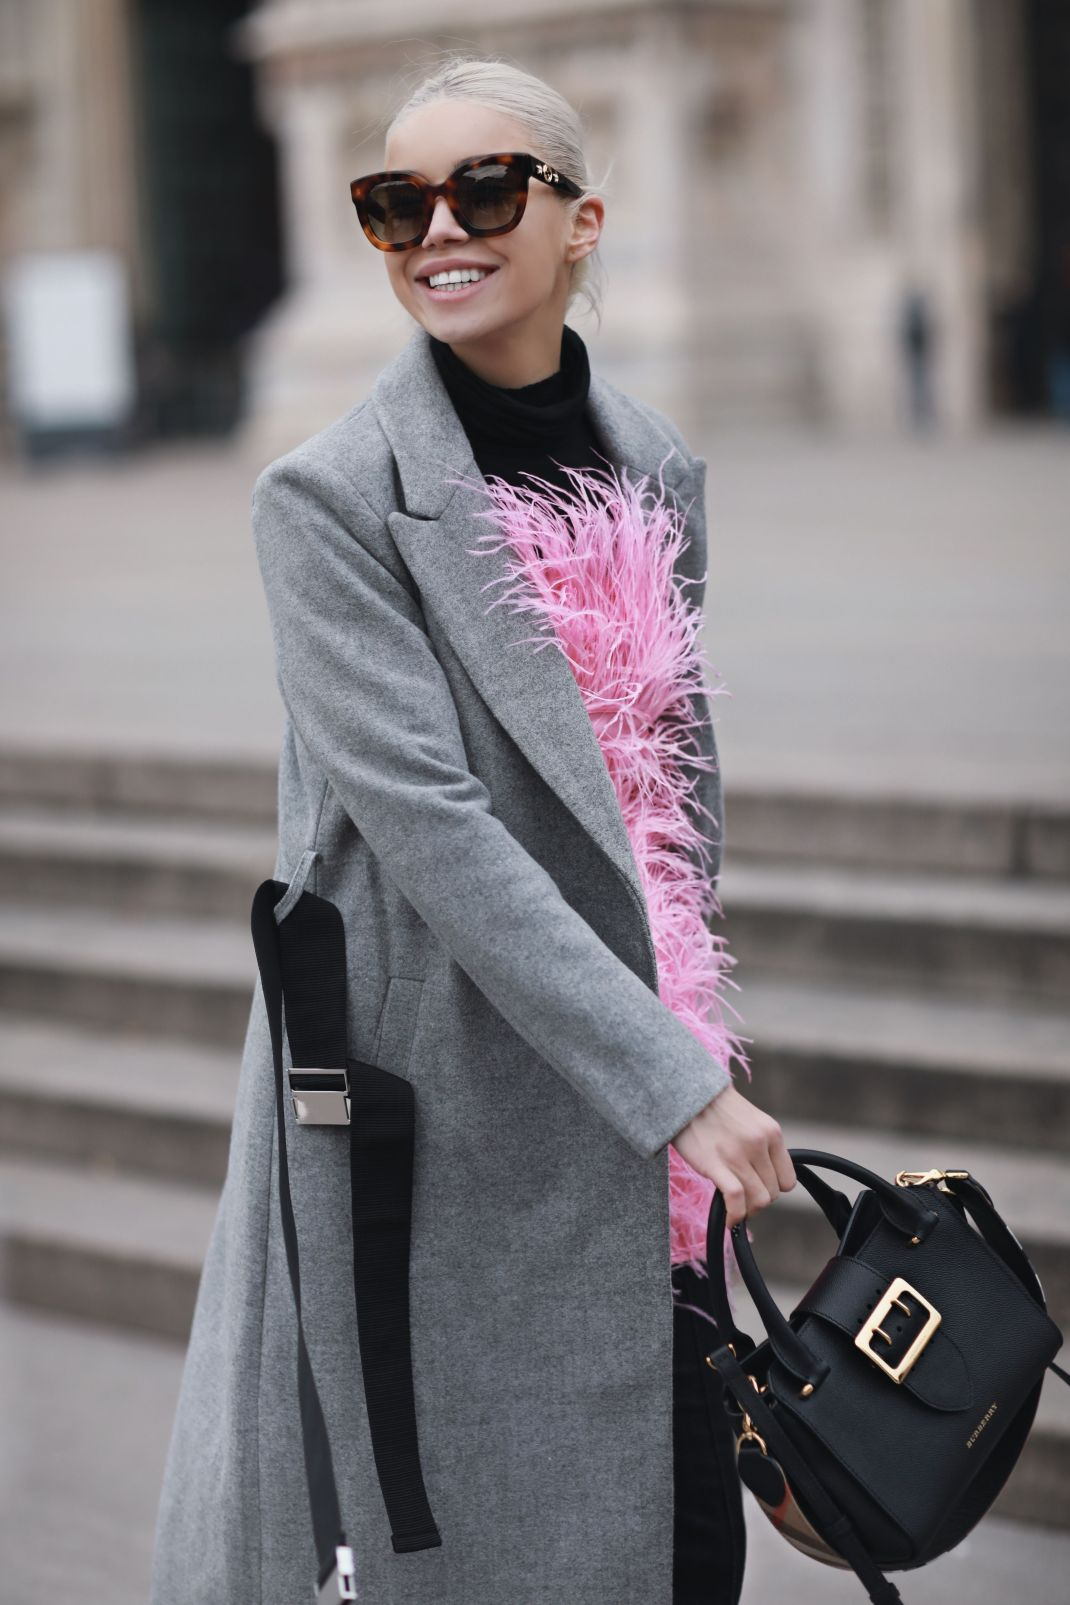 #MFW: Bright pinks and classic lines